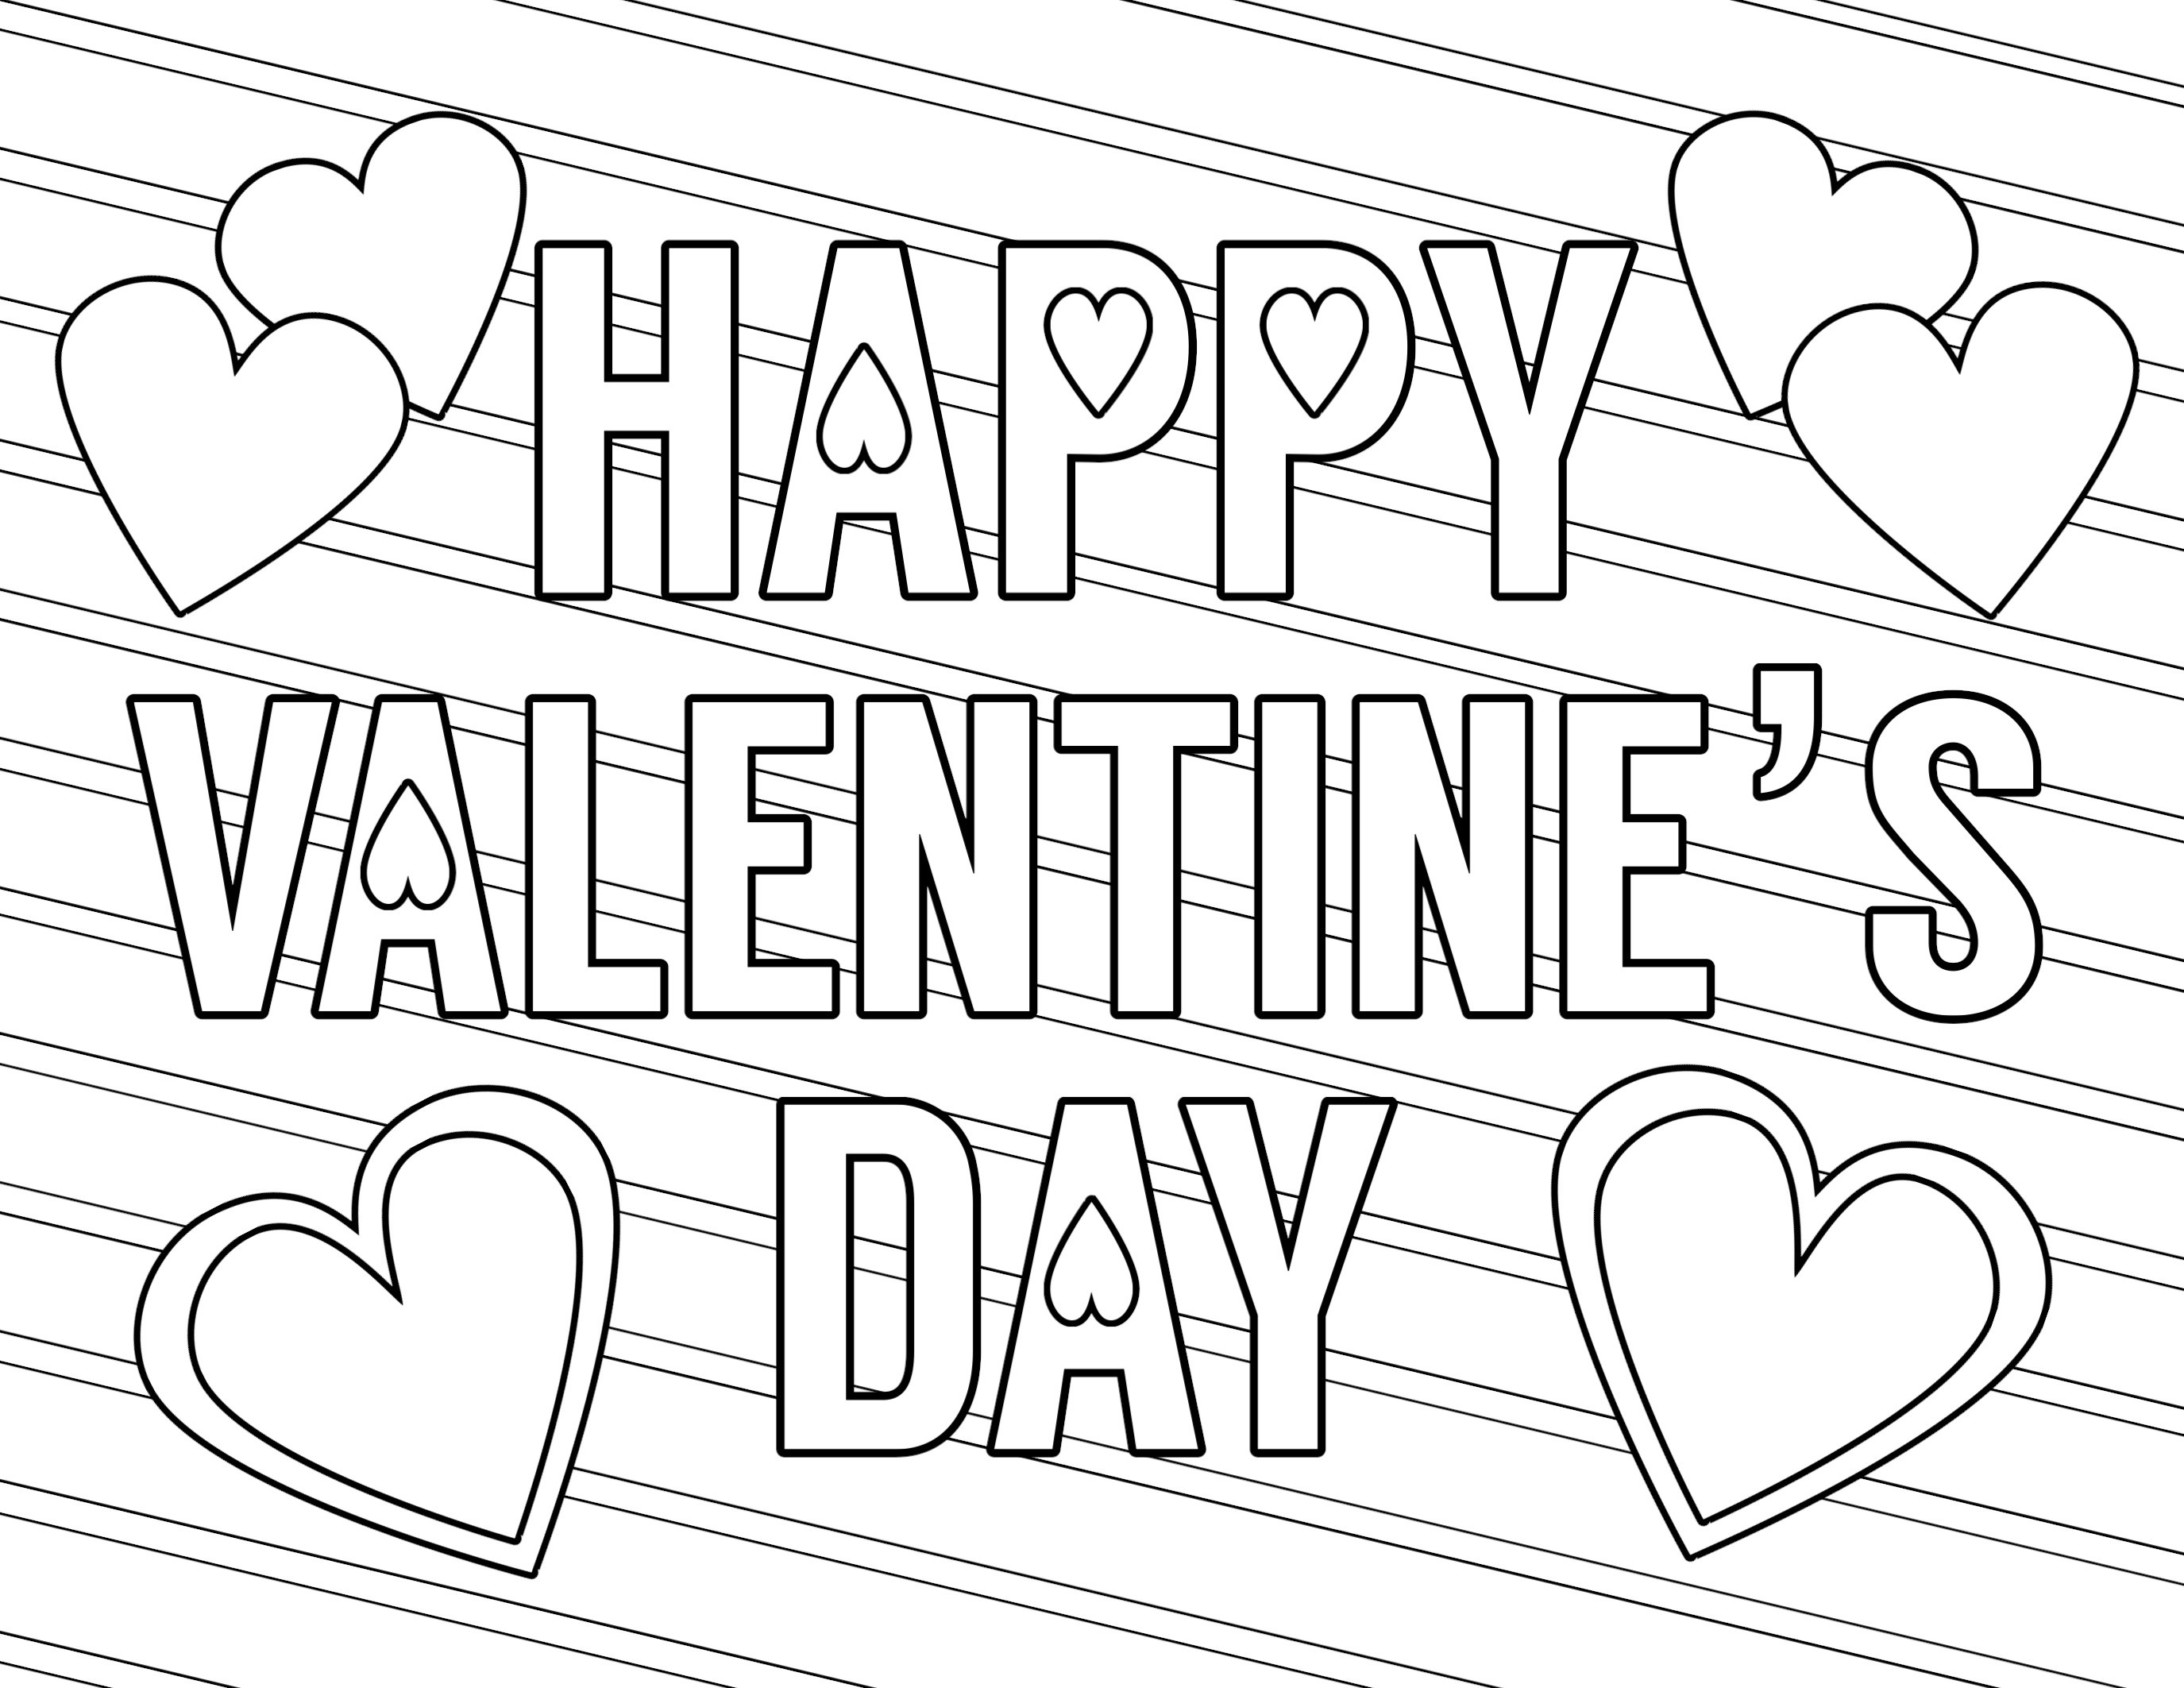 Coloring Ideas : Stunning Free Valentines Day Coloring Pages Page - Free Printable Valentine Coloring Pages